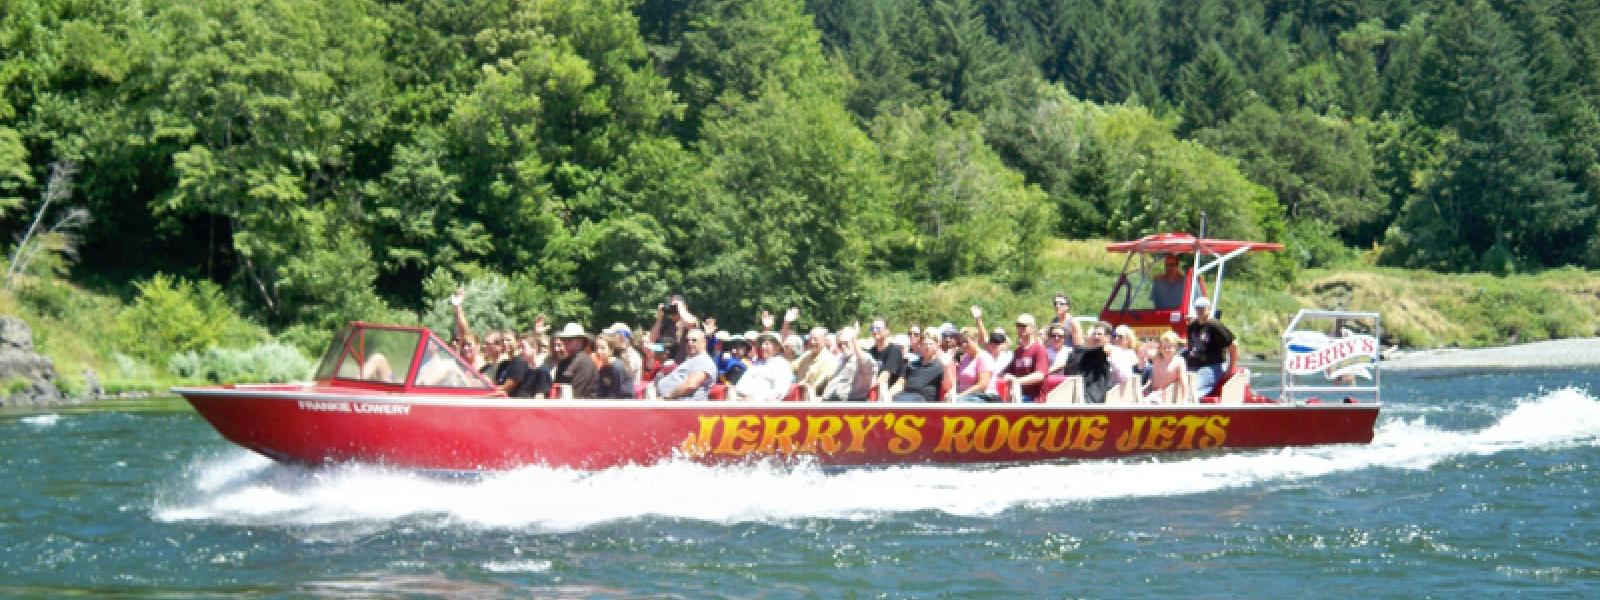 Jerry's Jet River Boat Ride